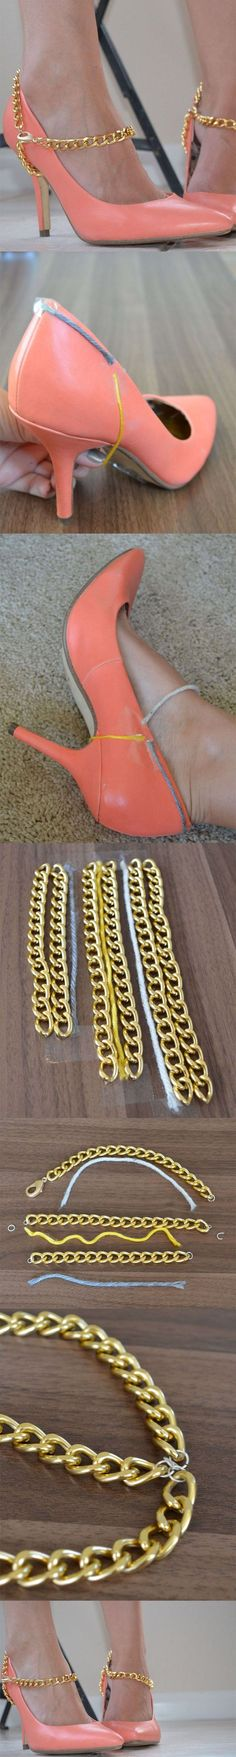 DIY: Jewelry Chains Cool Ideas Chain Heel Harnesses Inspired by Sass + Bide.